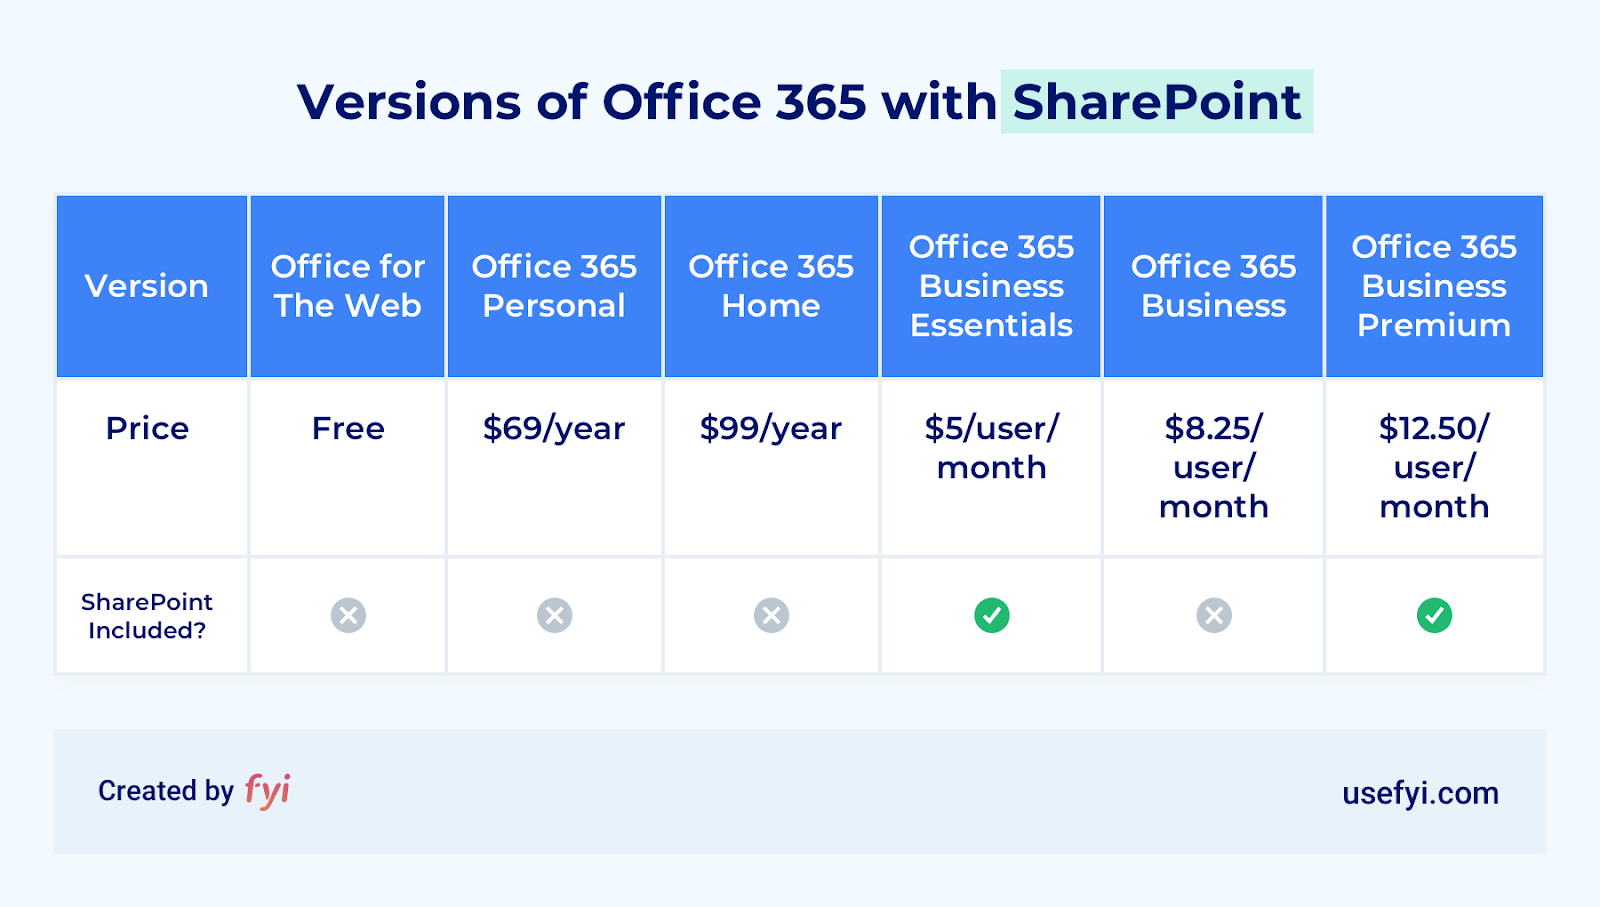 office 365 versions including sharepoint